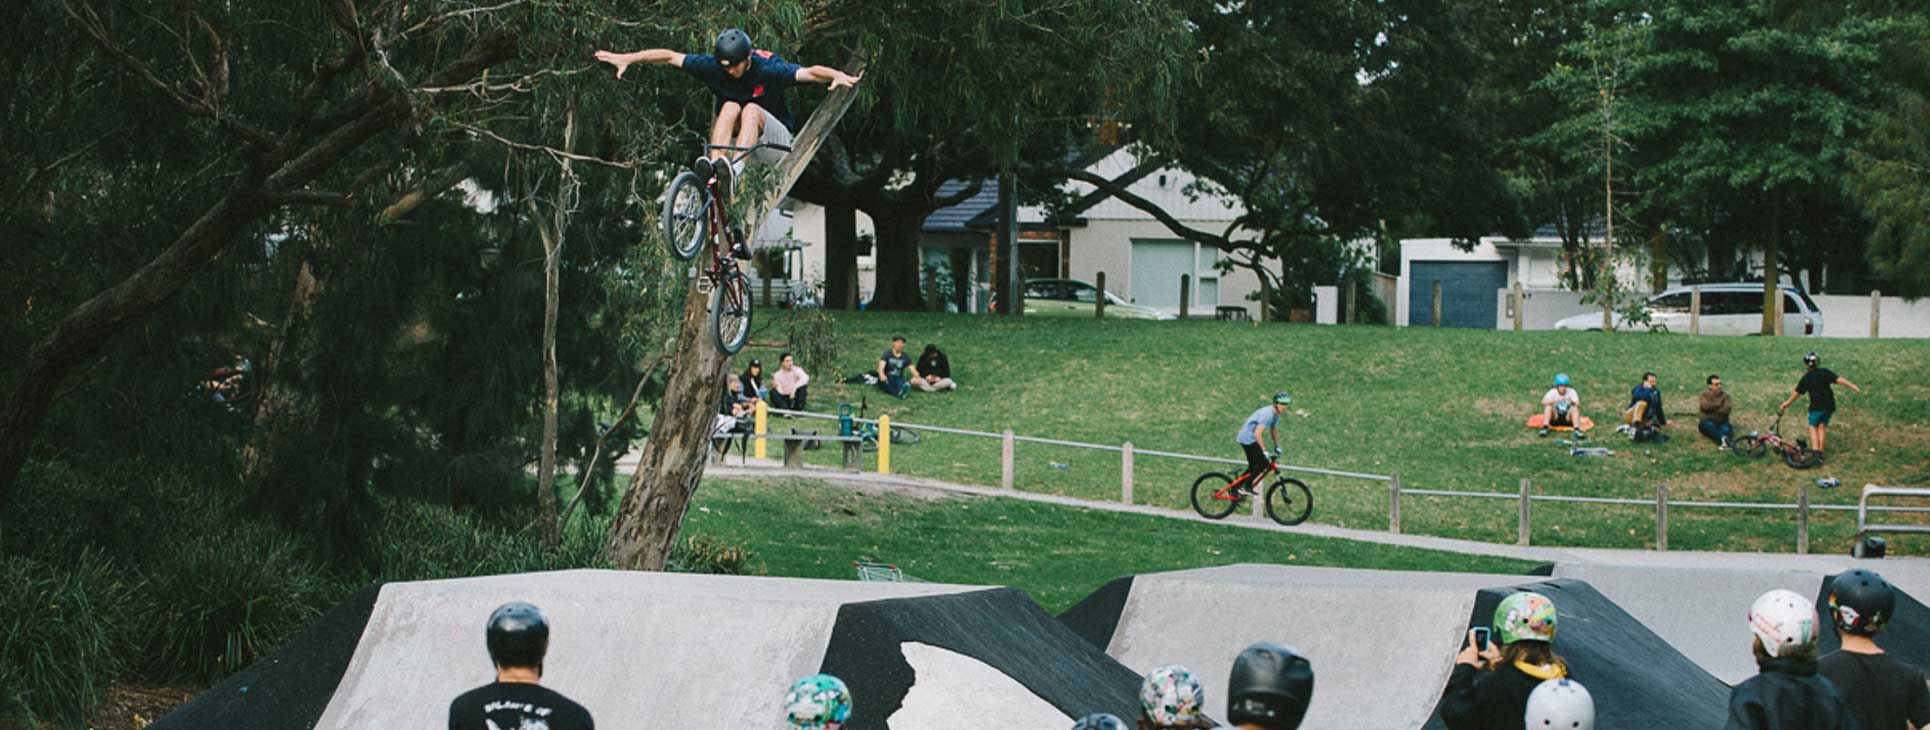 Buying BMX in Melbourne